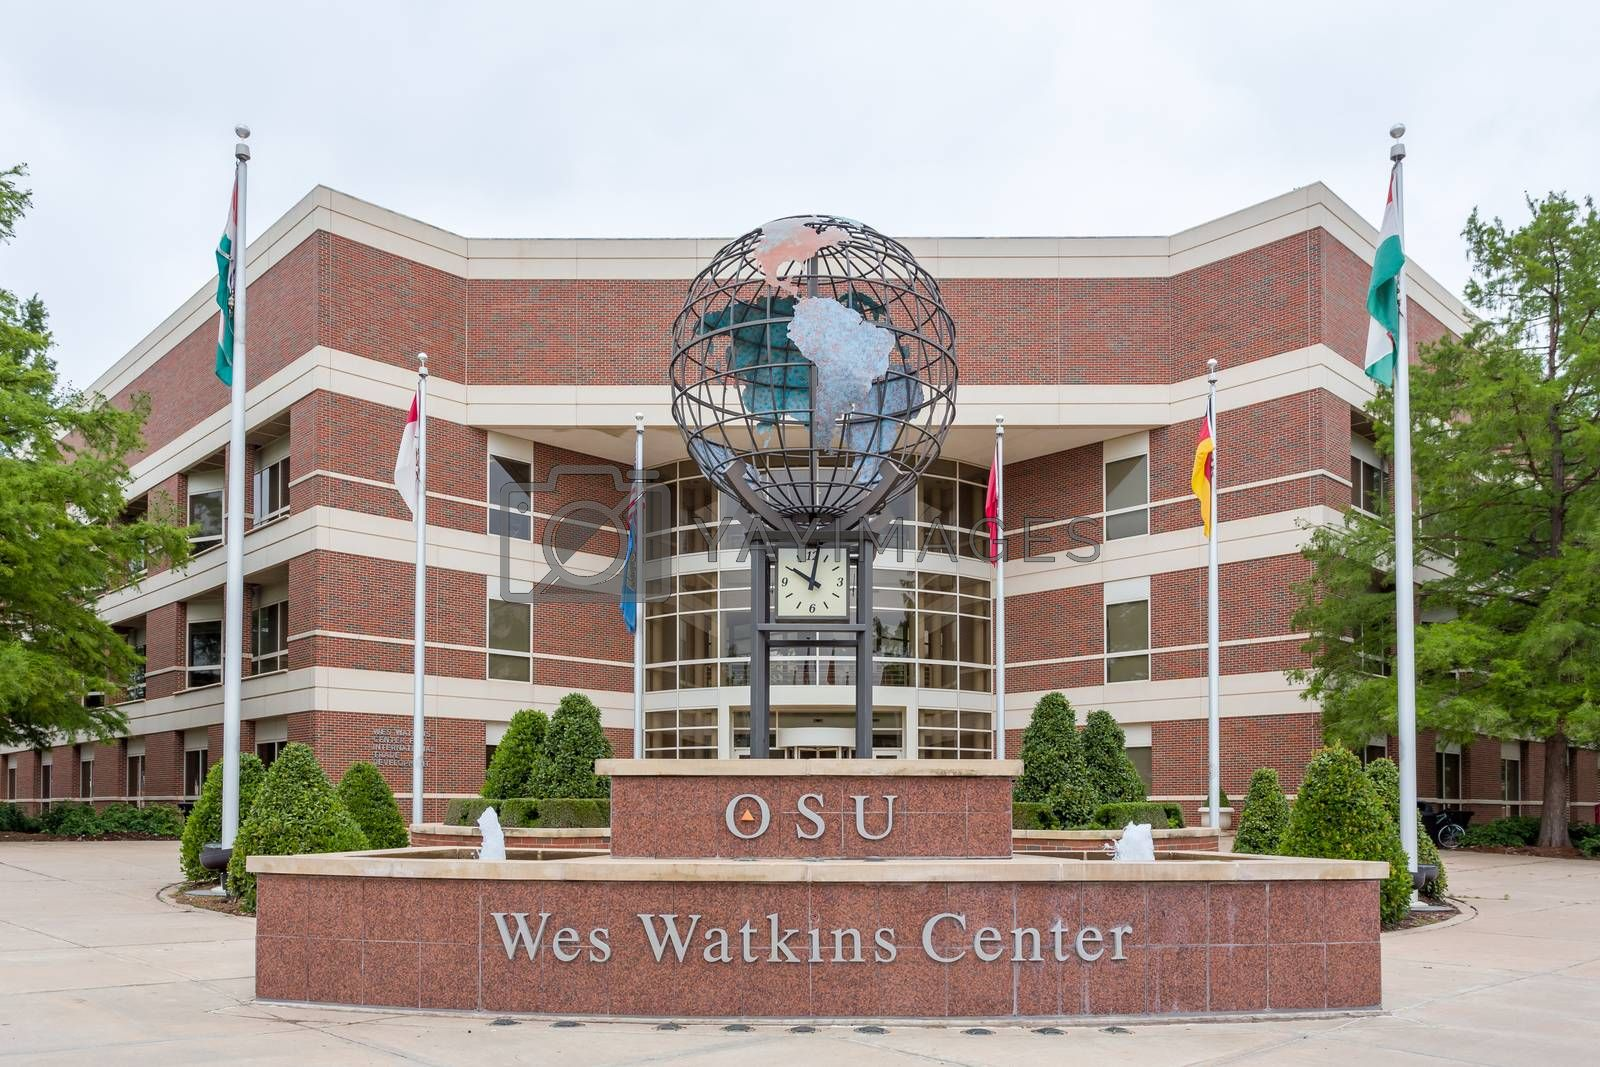 STILLWATER, OK/USA - MAY 20, 2016: Wes Watkins Center on the campus of Oklahoma State University.